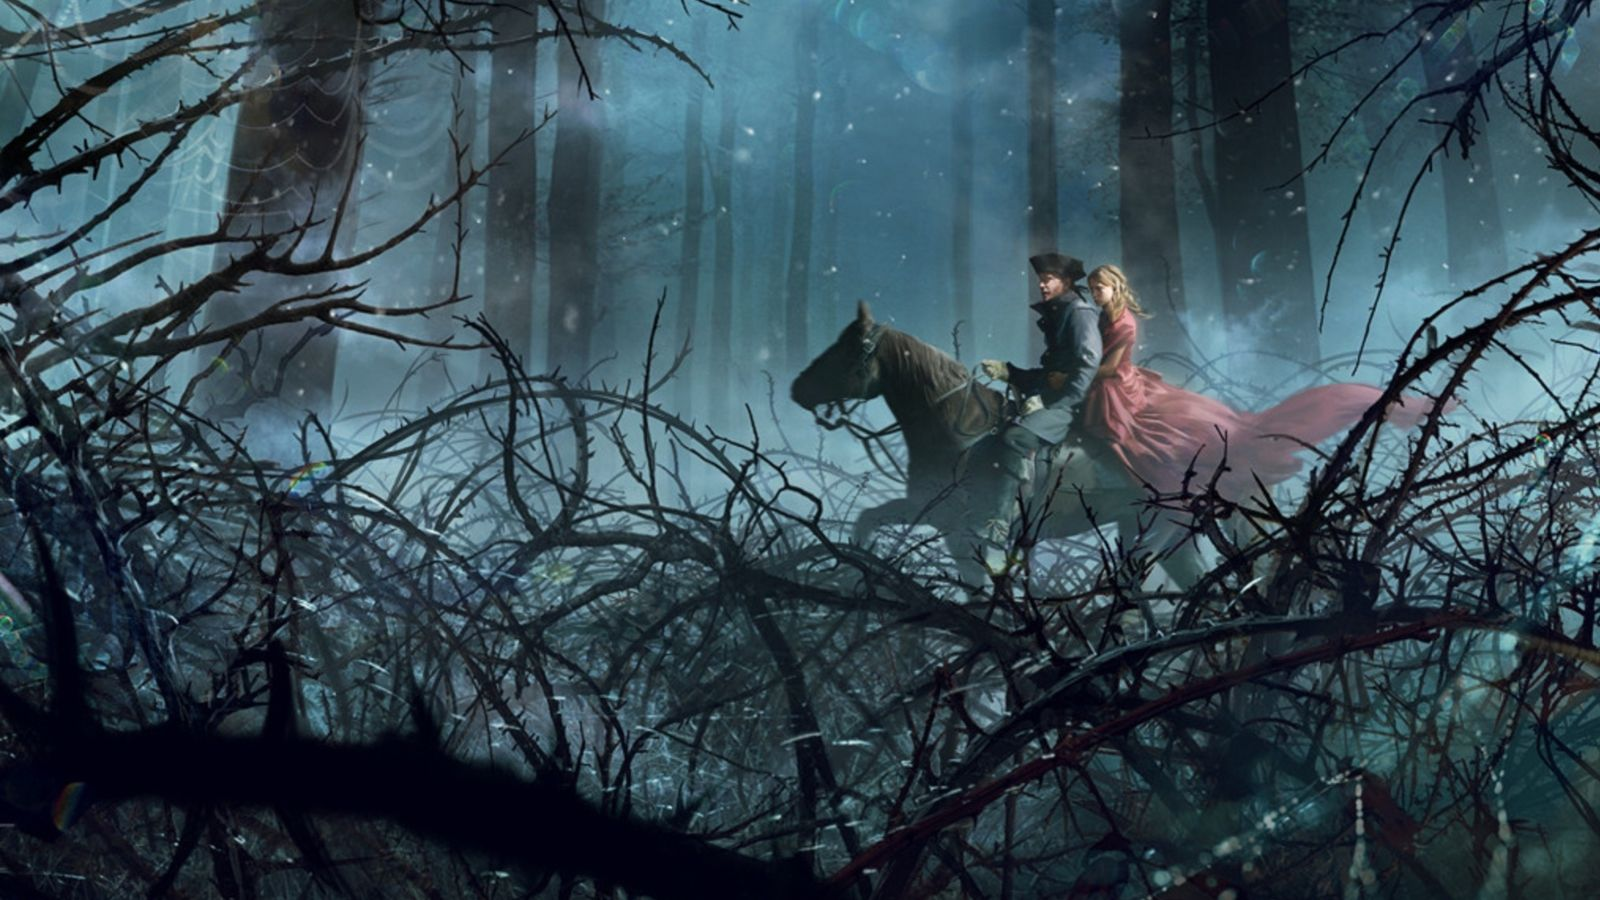 Night Horse Ride Phone Wallpaper Night Horse Fantasy Couples Hd Backgrounds Wallpaper fantasy horse night forest art